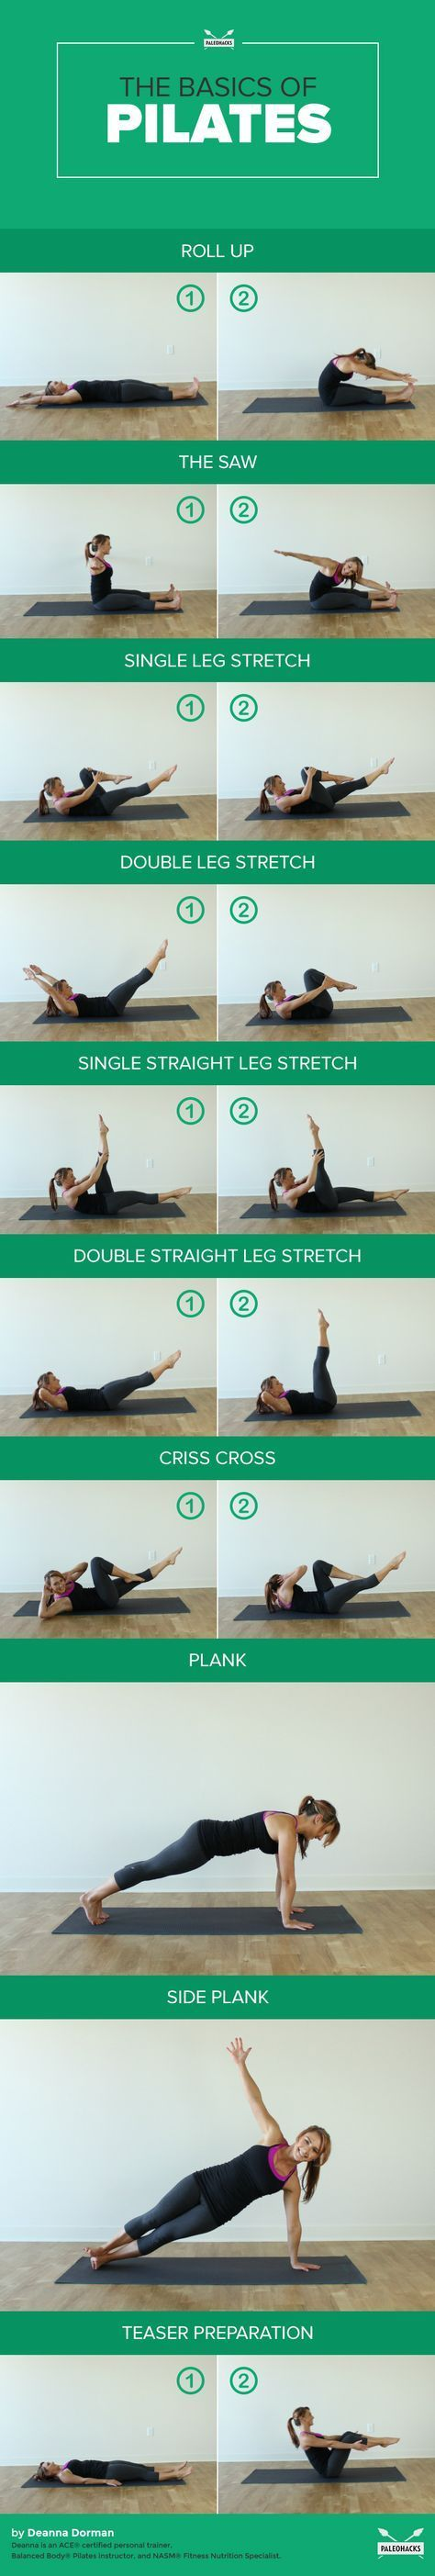 943 Best Yoga Pilates Images On Pinterest Workout Merrithew Canada Arc Barrel Discount 25 The Benefits Of And 10 Classic Moves